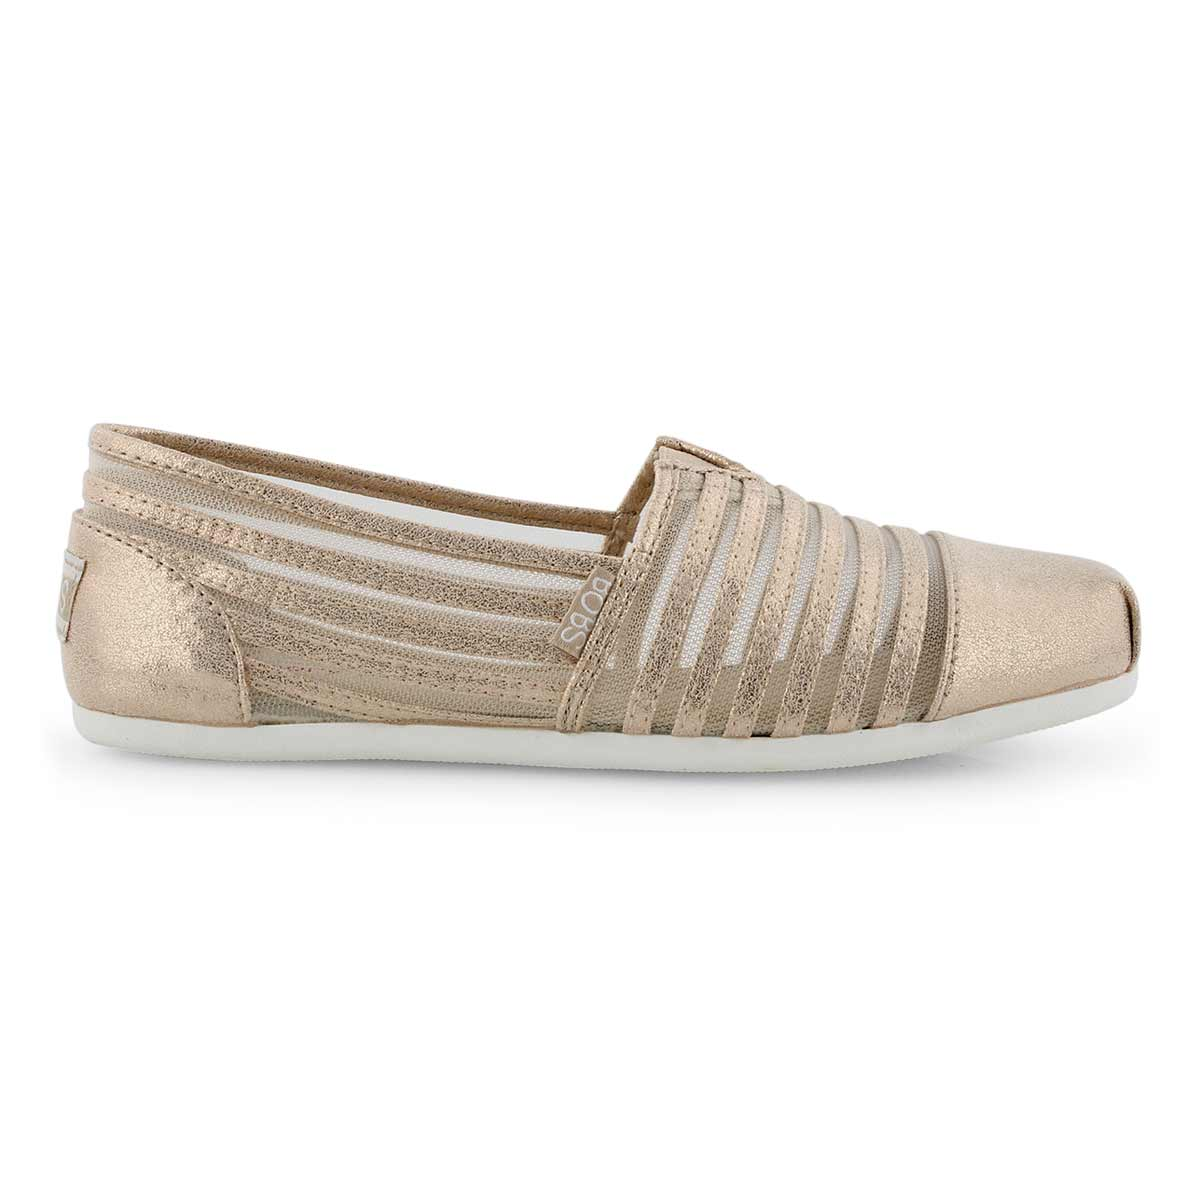 Lds Bobs Plush champagne casual slip on